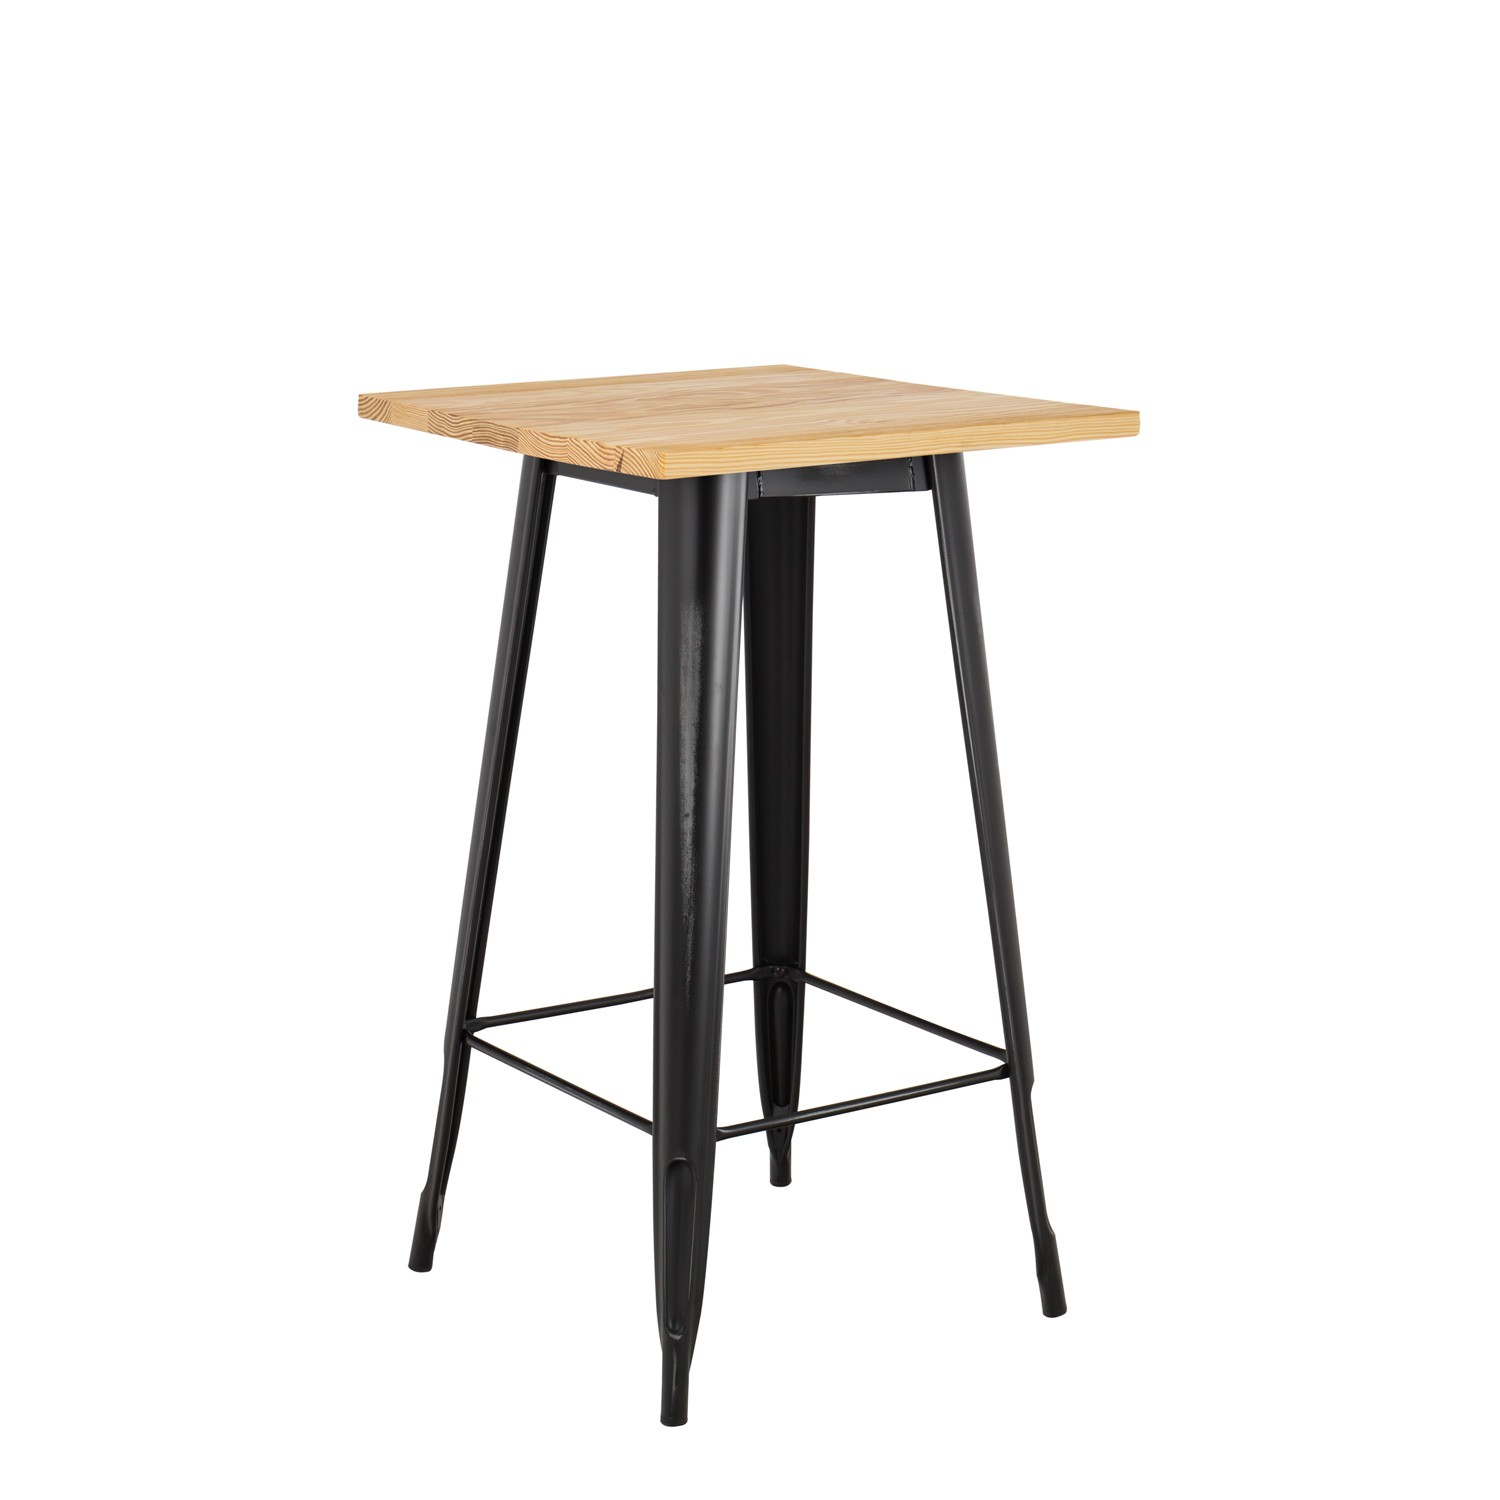 Exceptionnel Wooden LIX High Table   SKLUM